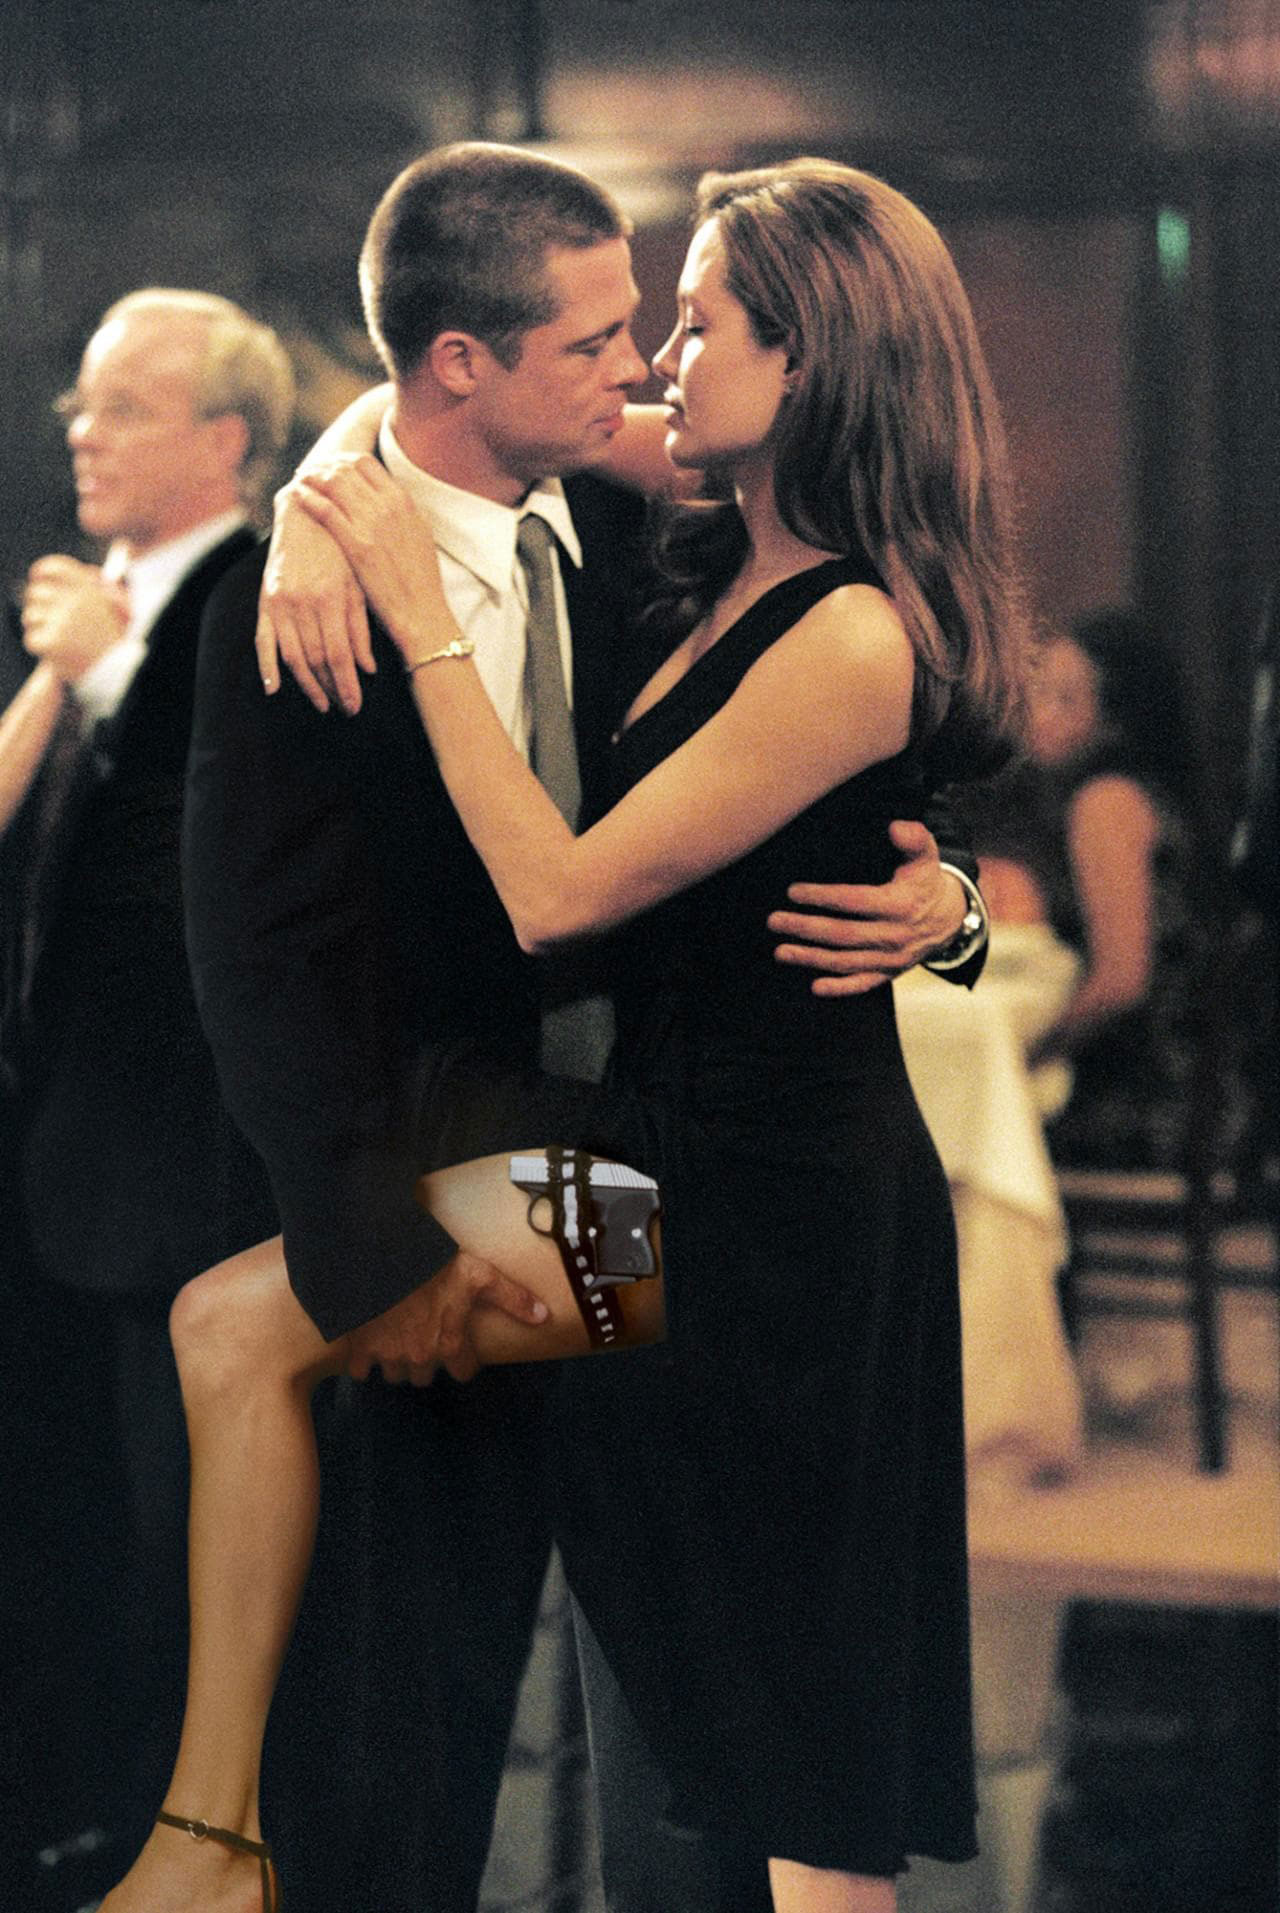 Brad Pitt and Jennifer Aniston Relationship Timeline - The Fight Club star met Angelina Jolie on the set of Mr. & Mrs. Smith .